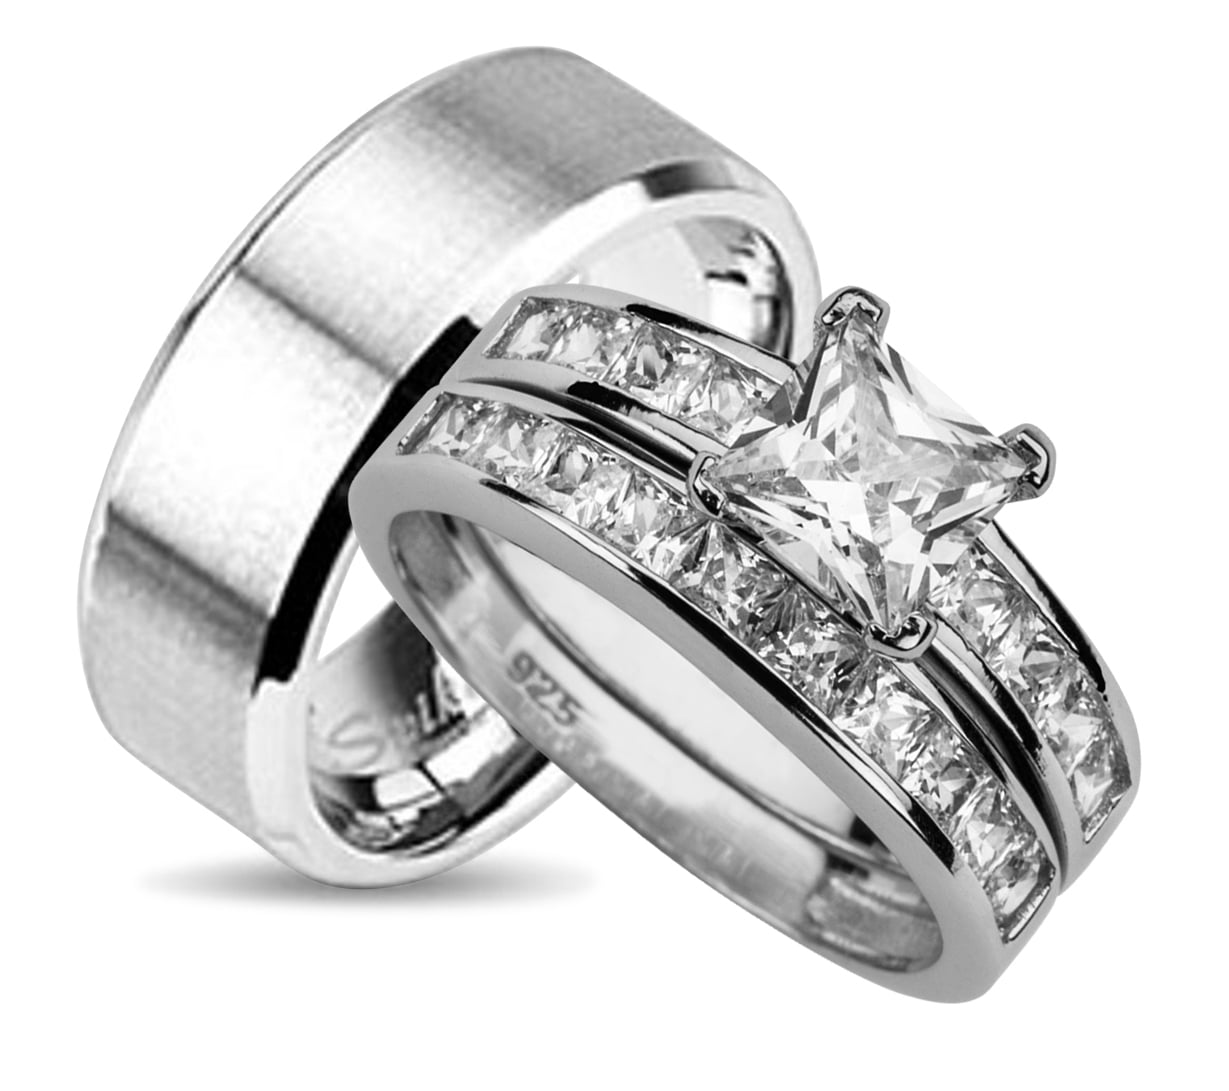 His And Hers Wedding Ring Set Matching Bands For Him Her 9 12 Choose Sizes